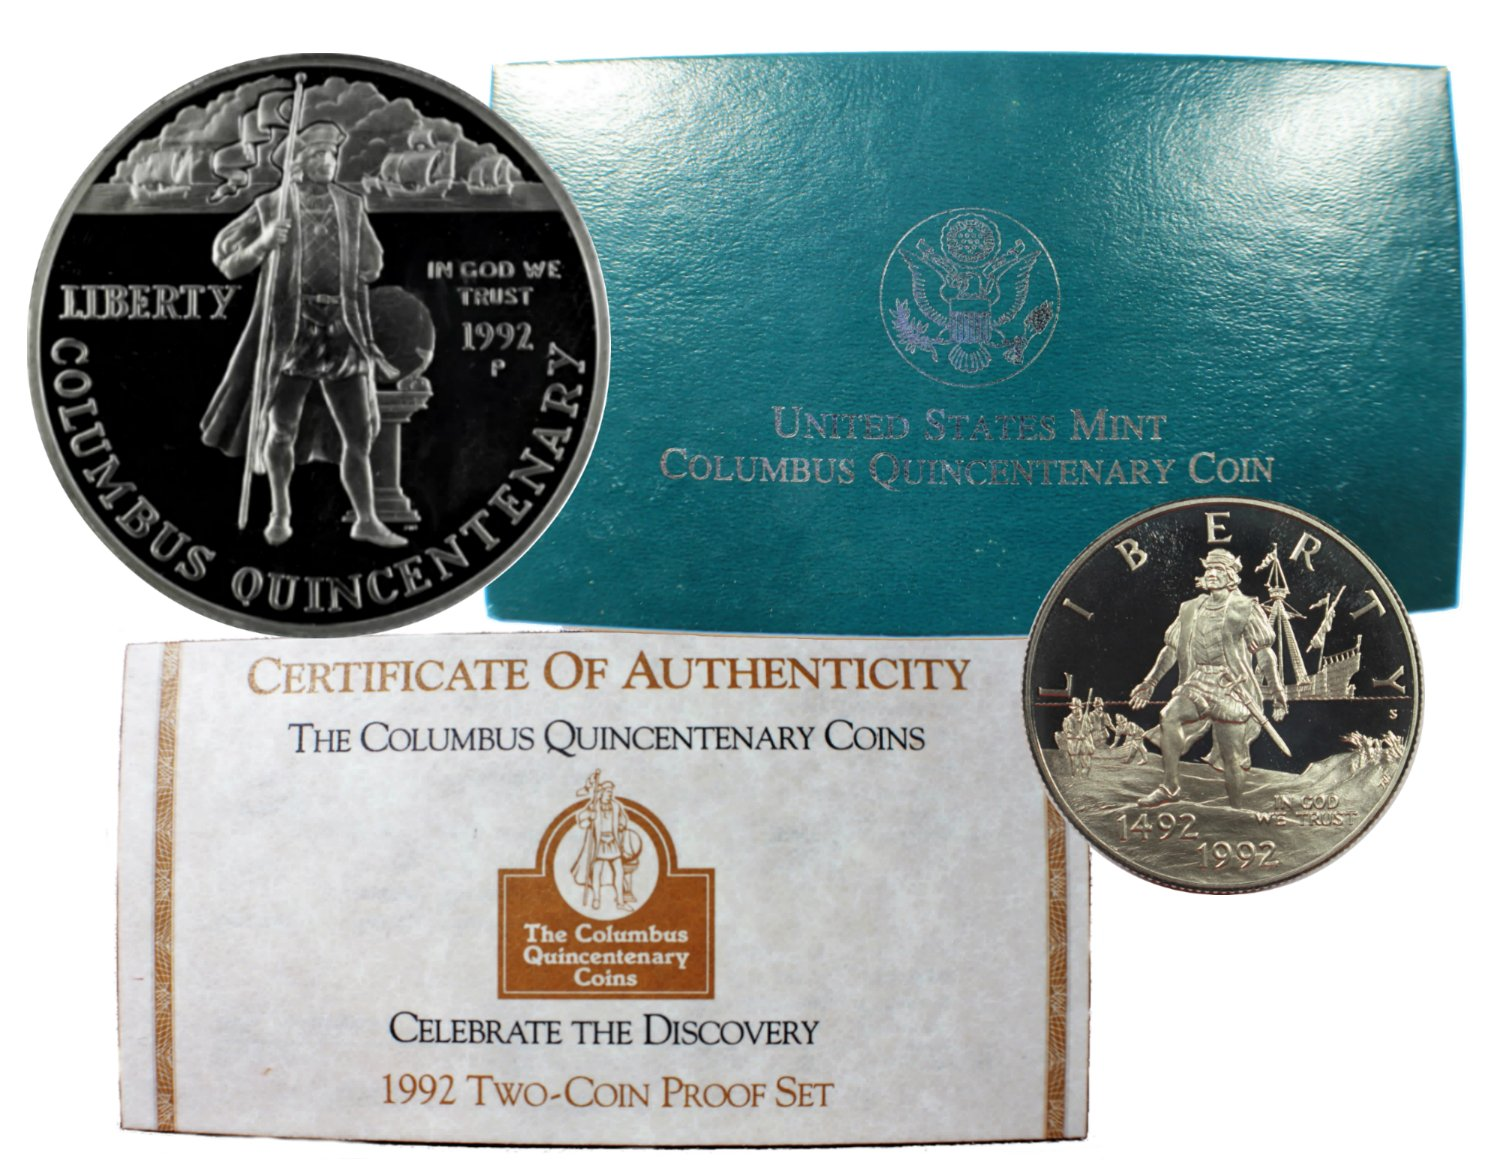 1992 Columbus Commemorative Silver Dollar Mint State 2-Coin Set